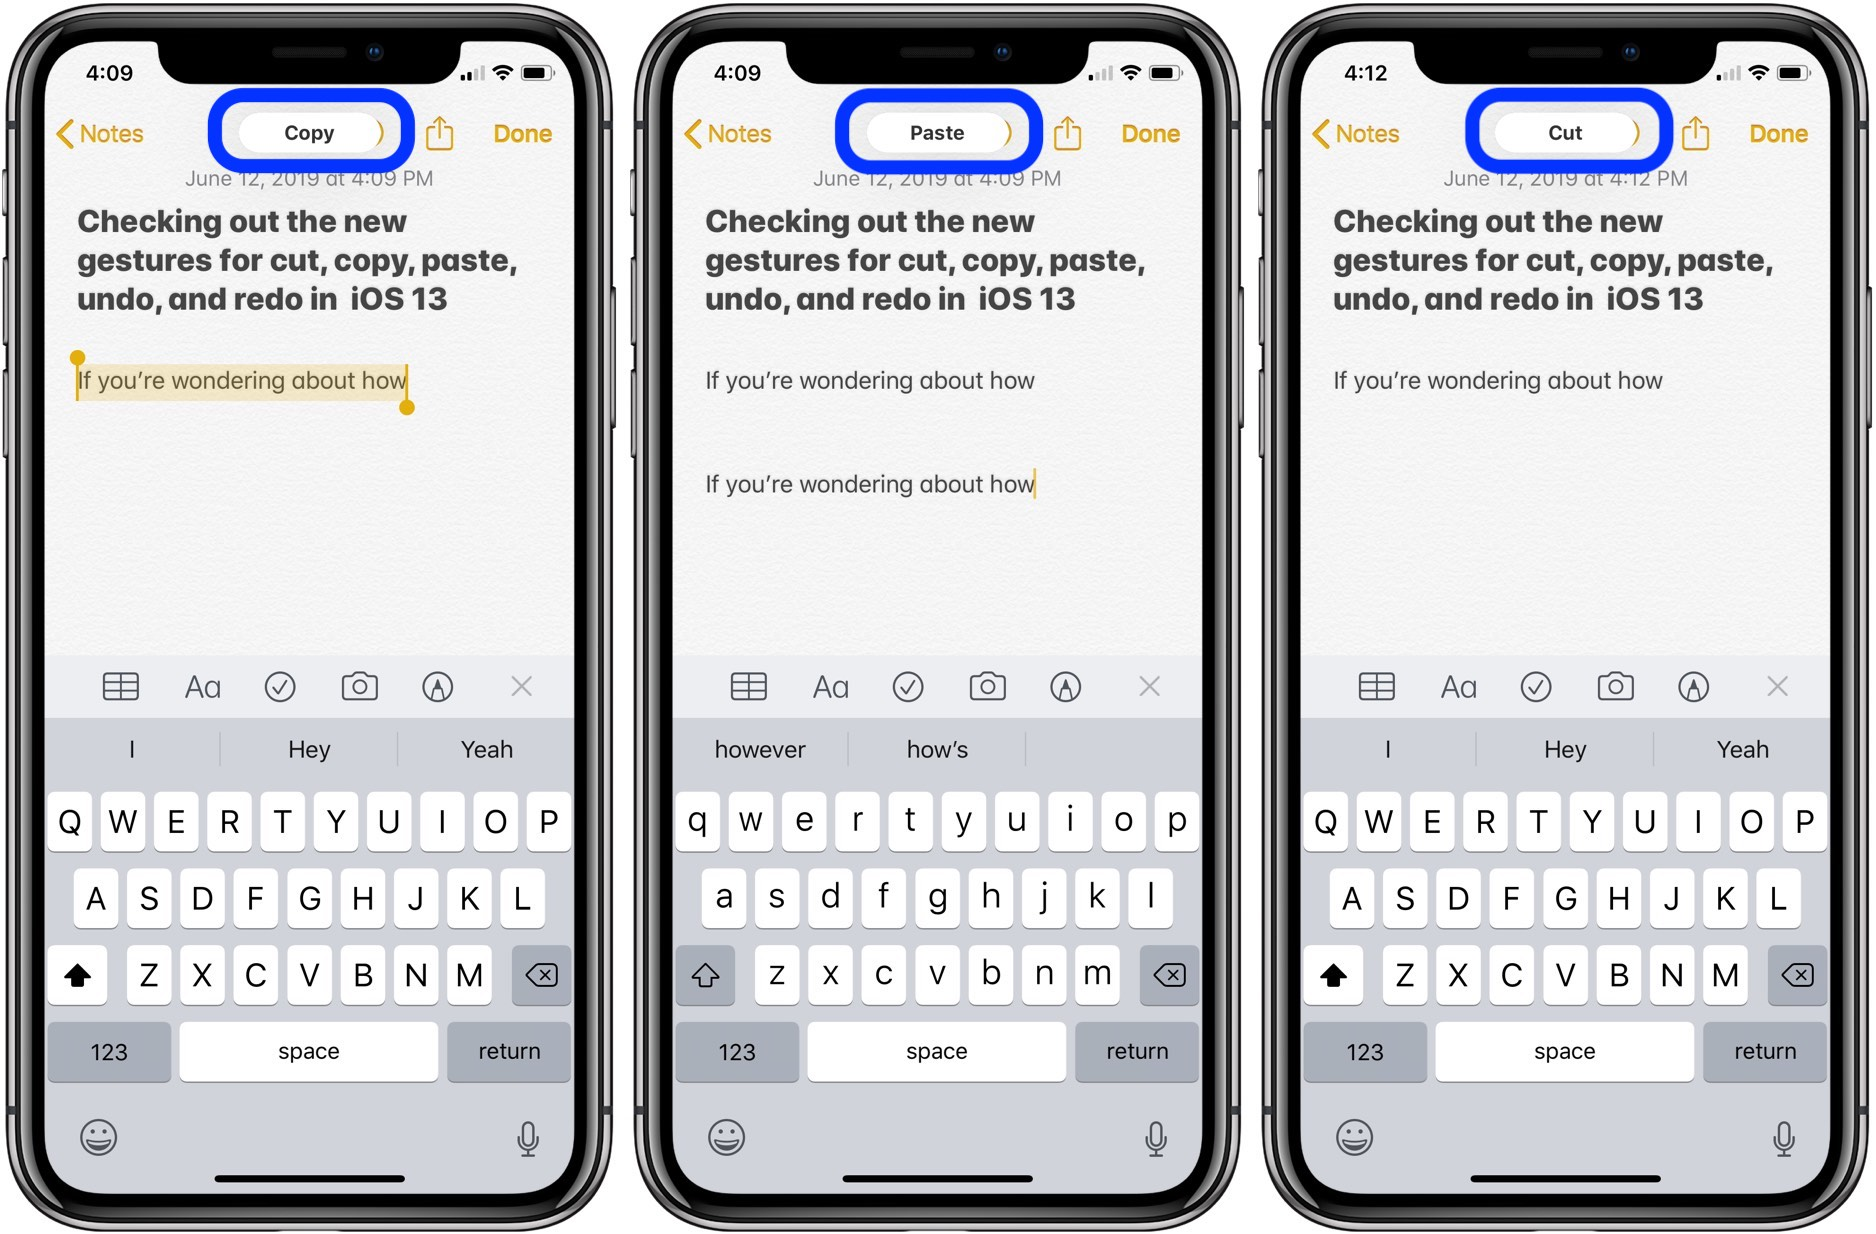 How to use gestures for undo, cut, copy, and paste in iOS 13